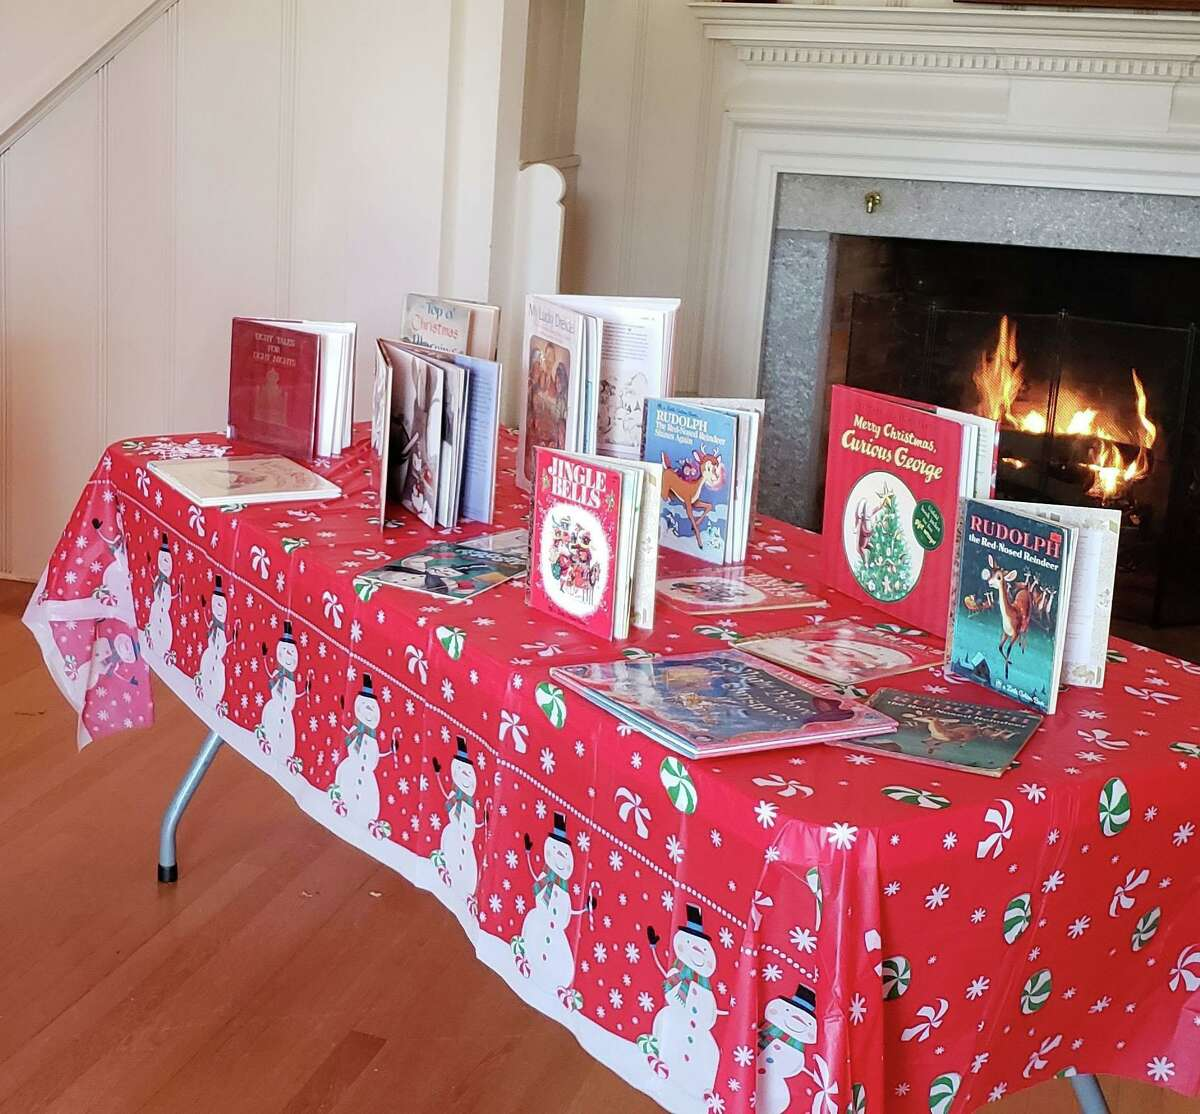 Spectrum/ The Friends of the Roxbury Library will hold its second annual holiday book sale at the library's used book store The Next Chapter Dec. 7, 2019 from 10 a.m. to 6 p.m. The extended hours will offer shoppers a chance to purchase books and enjoy other holiday activities planned in town that day. Courtesy of Hodge Memorial Library